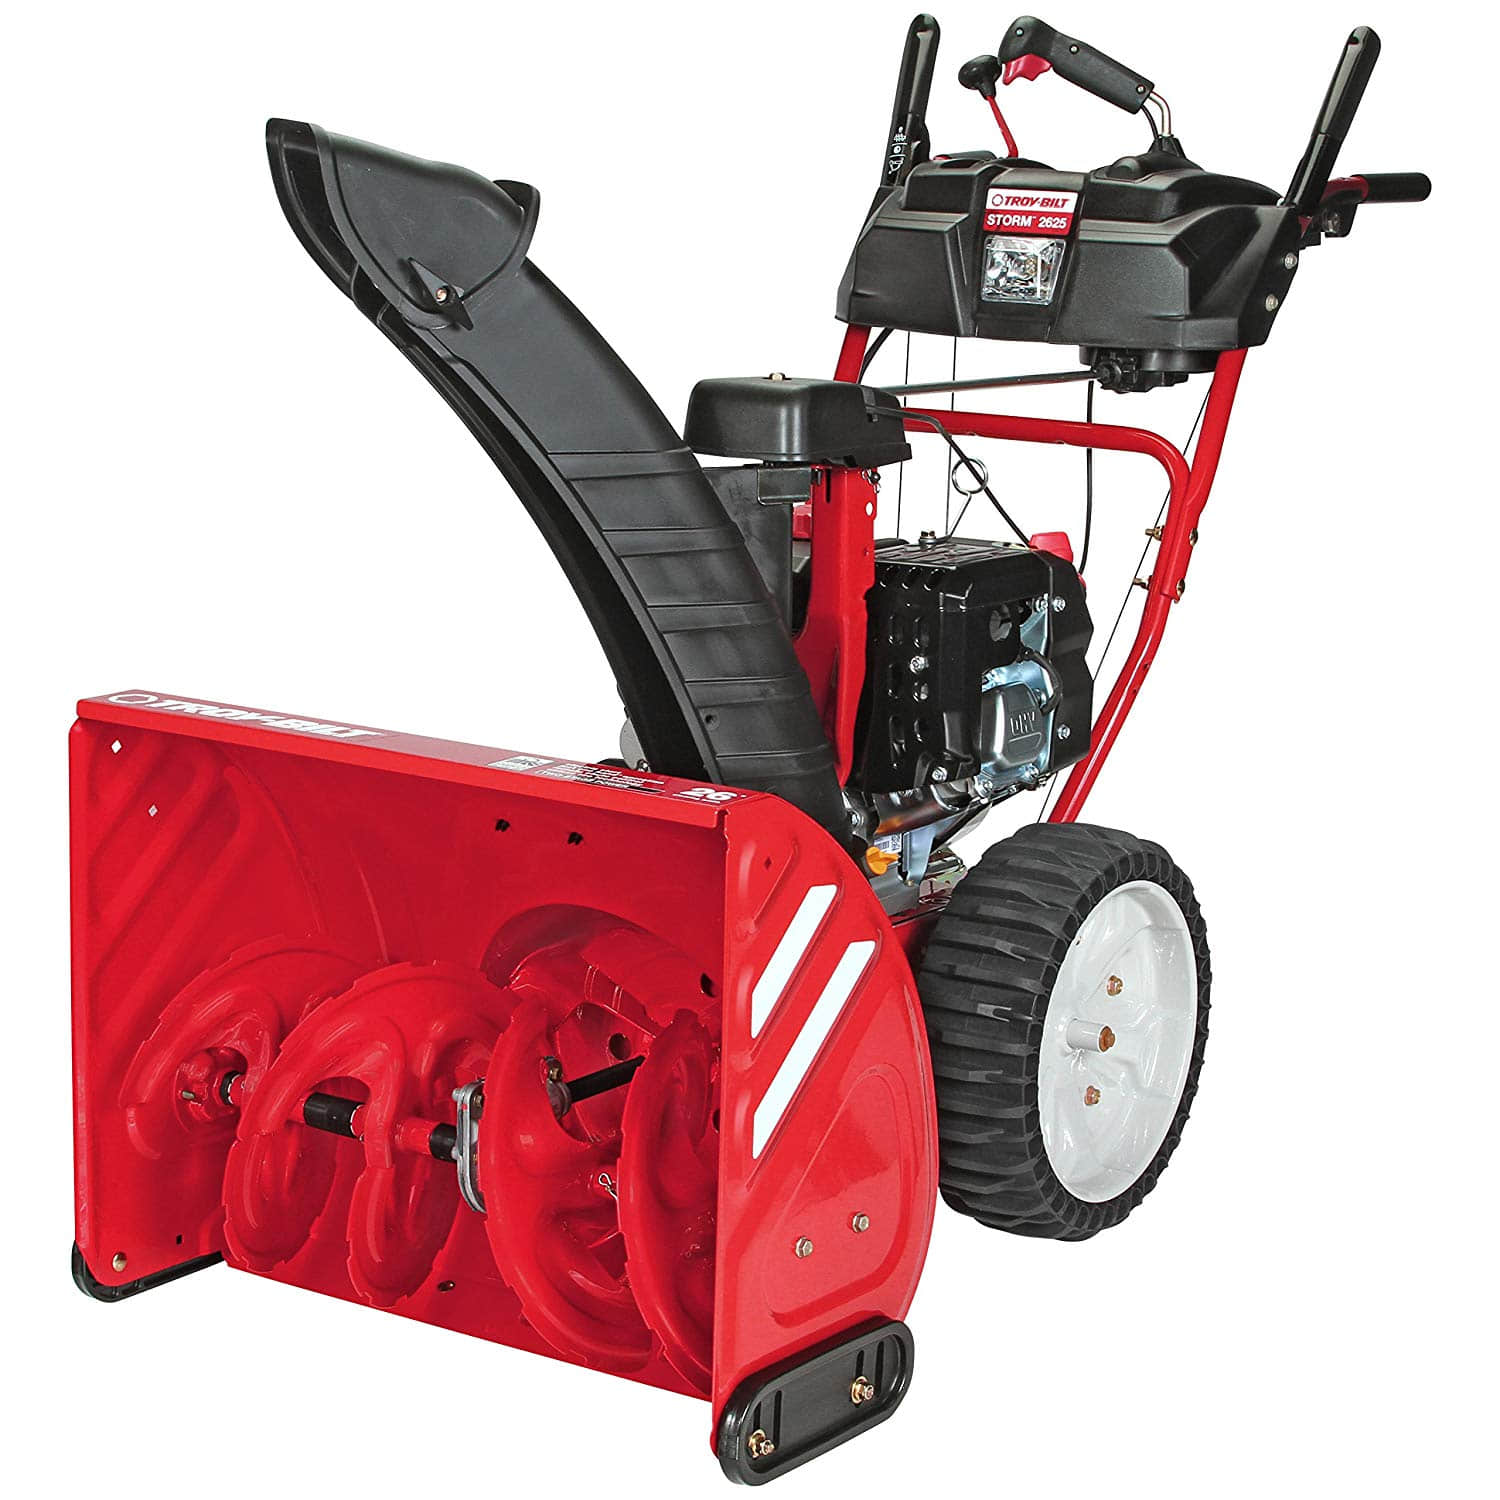 3 Best Snow Blowers You can Buy Right Now